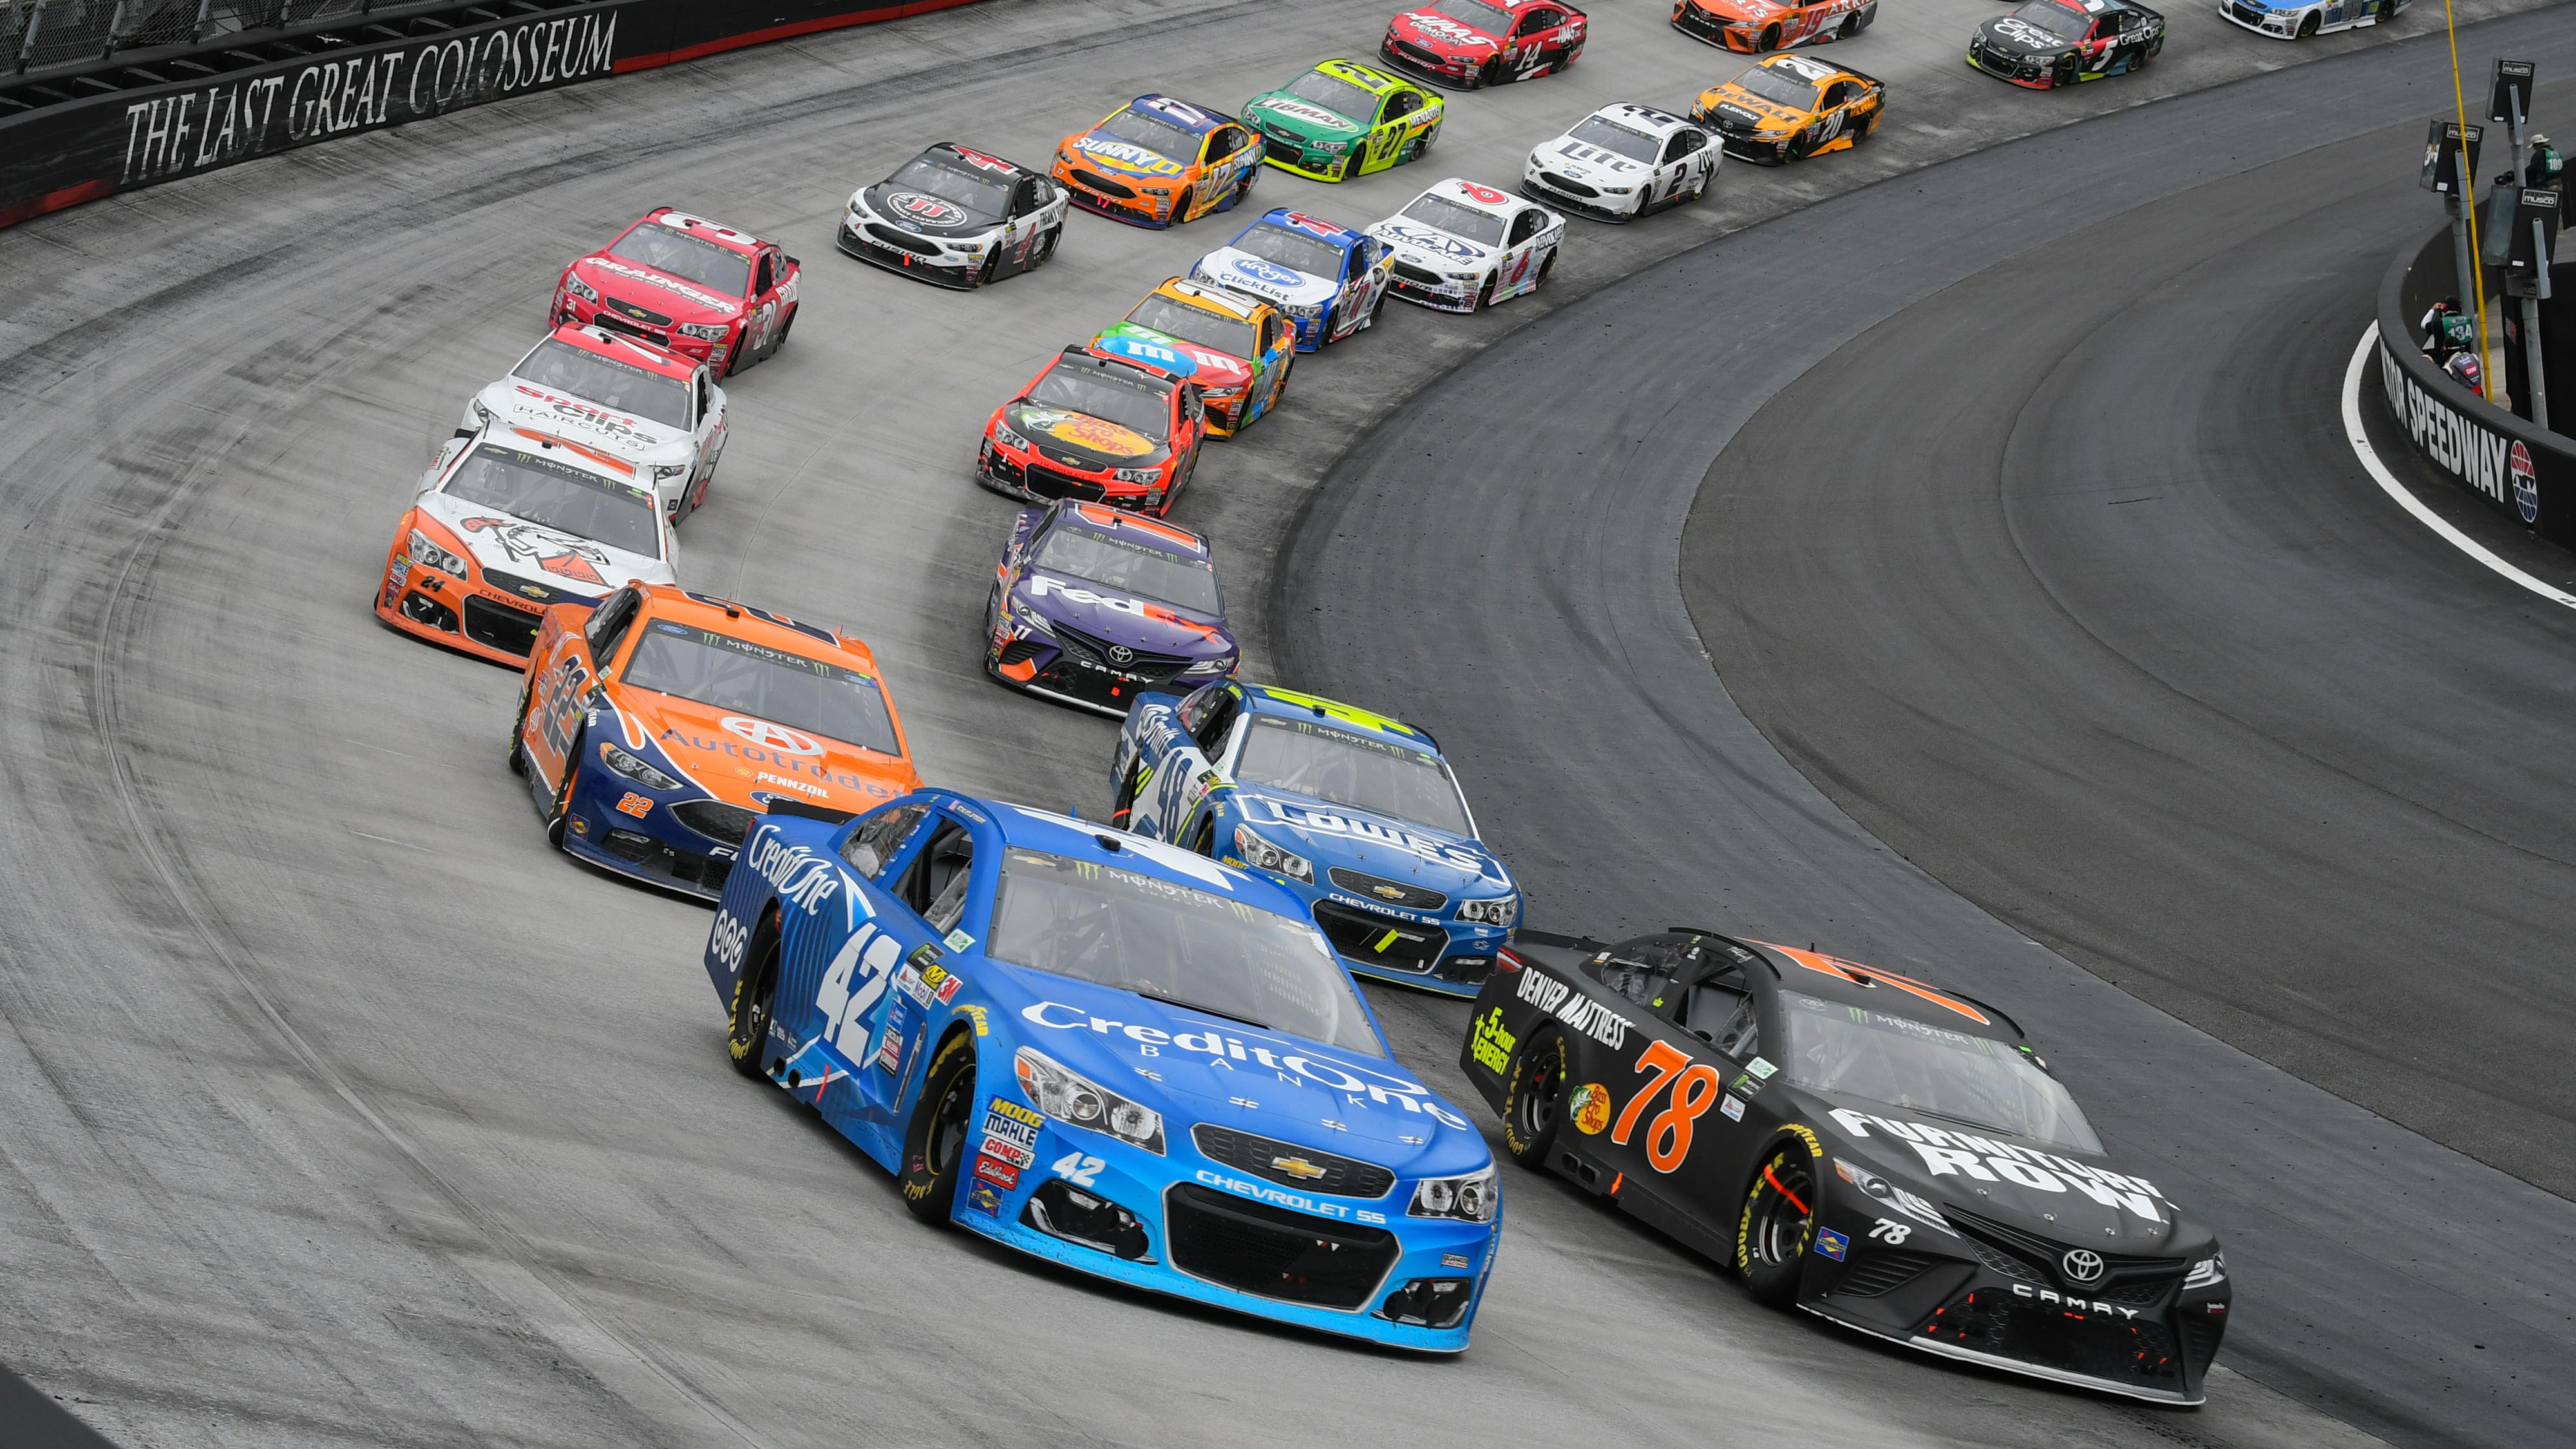 Apr 24, 2017; Bristol, TN, USA; NASCAR Cup Series drivers Kyle Larson (42) and Martin Truex Jr. (78) lead a restart during the Food City 500 at Bristol Motor Speedway. Mandatory Credit: Randy Sartin-USA TODAY Sports